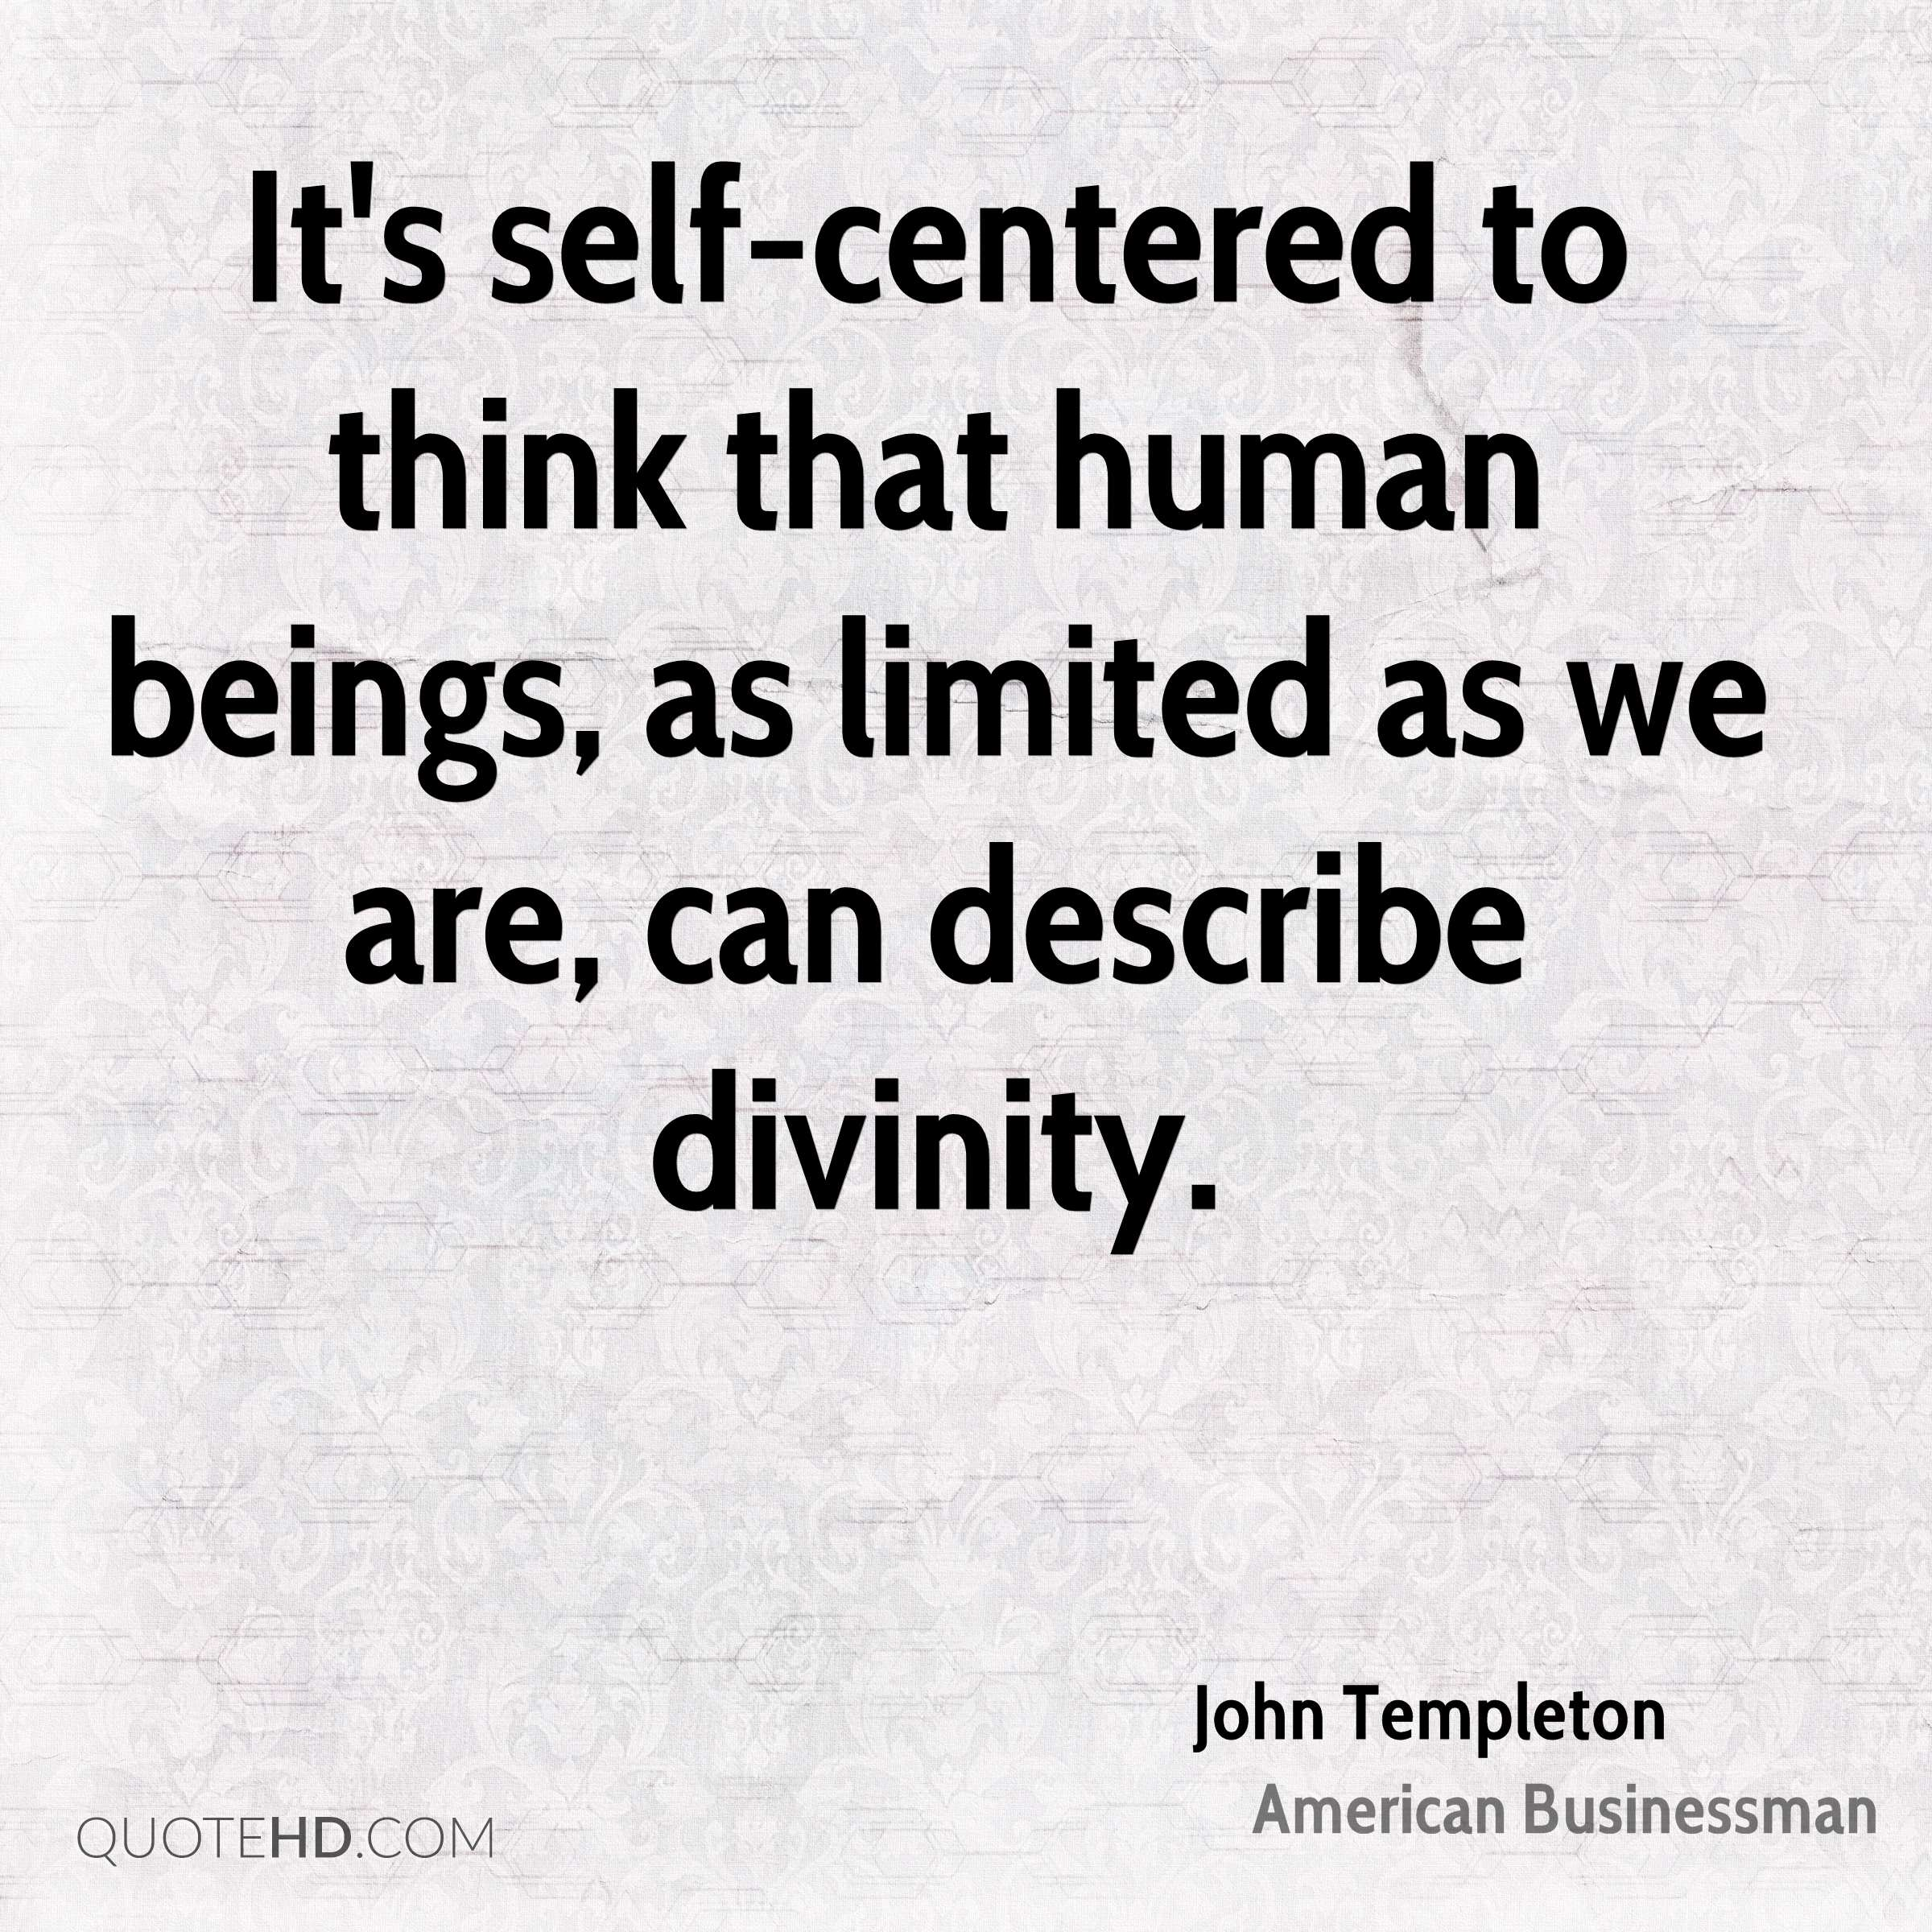 It's self-centered to think that human beings, as limited as we are, can describe divinity.